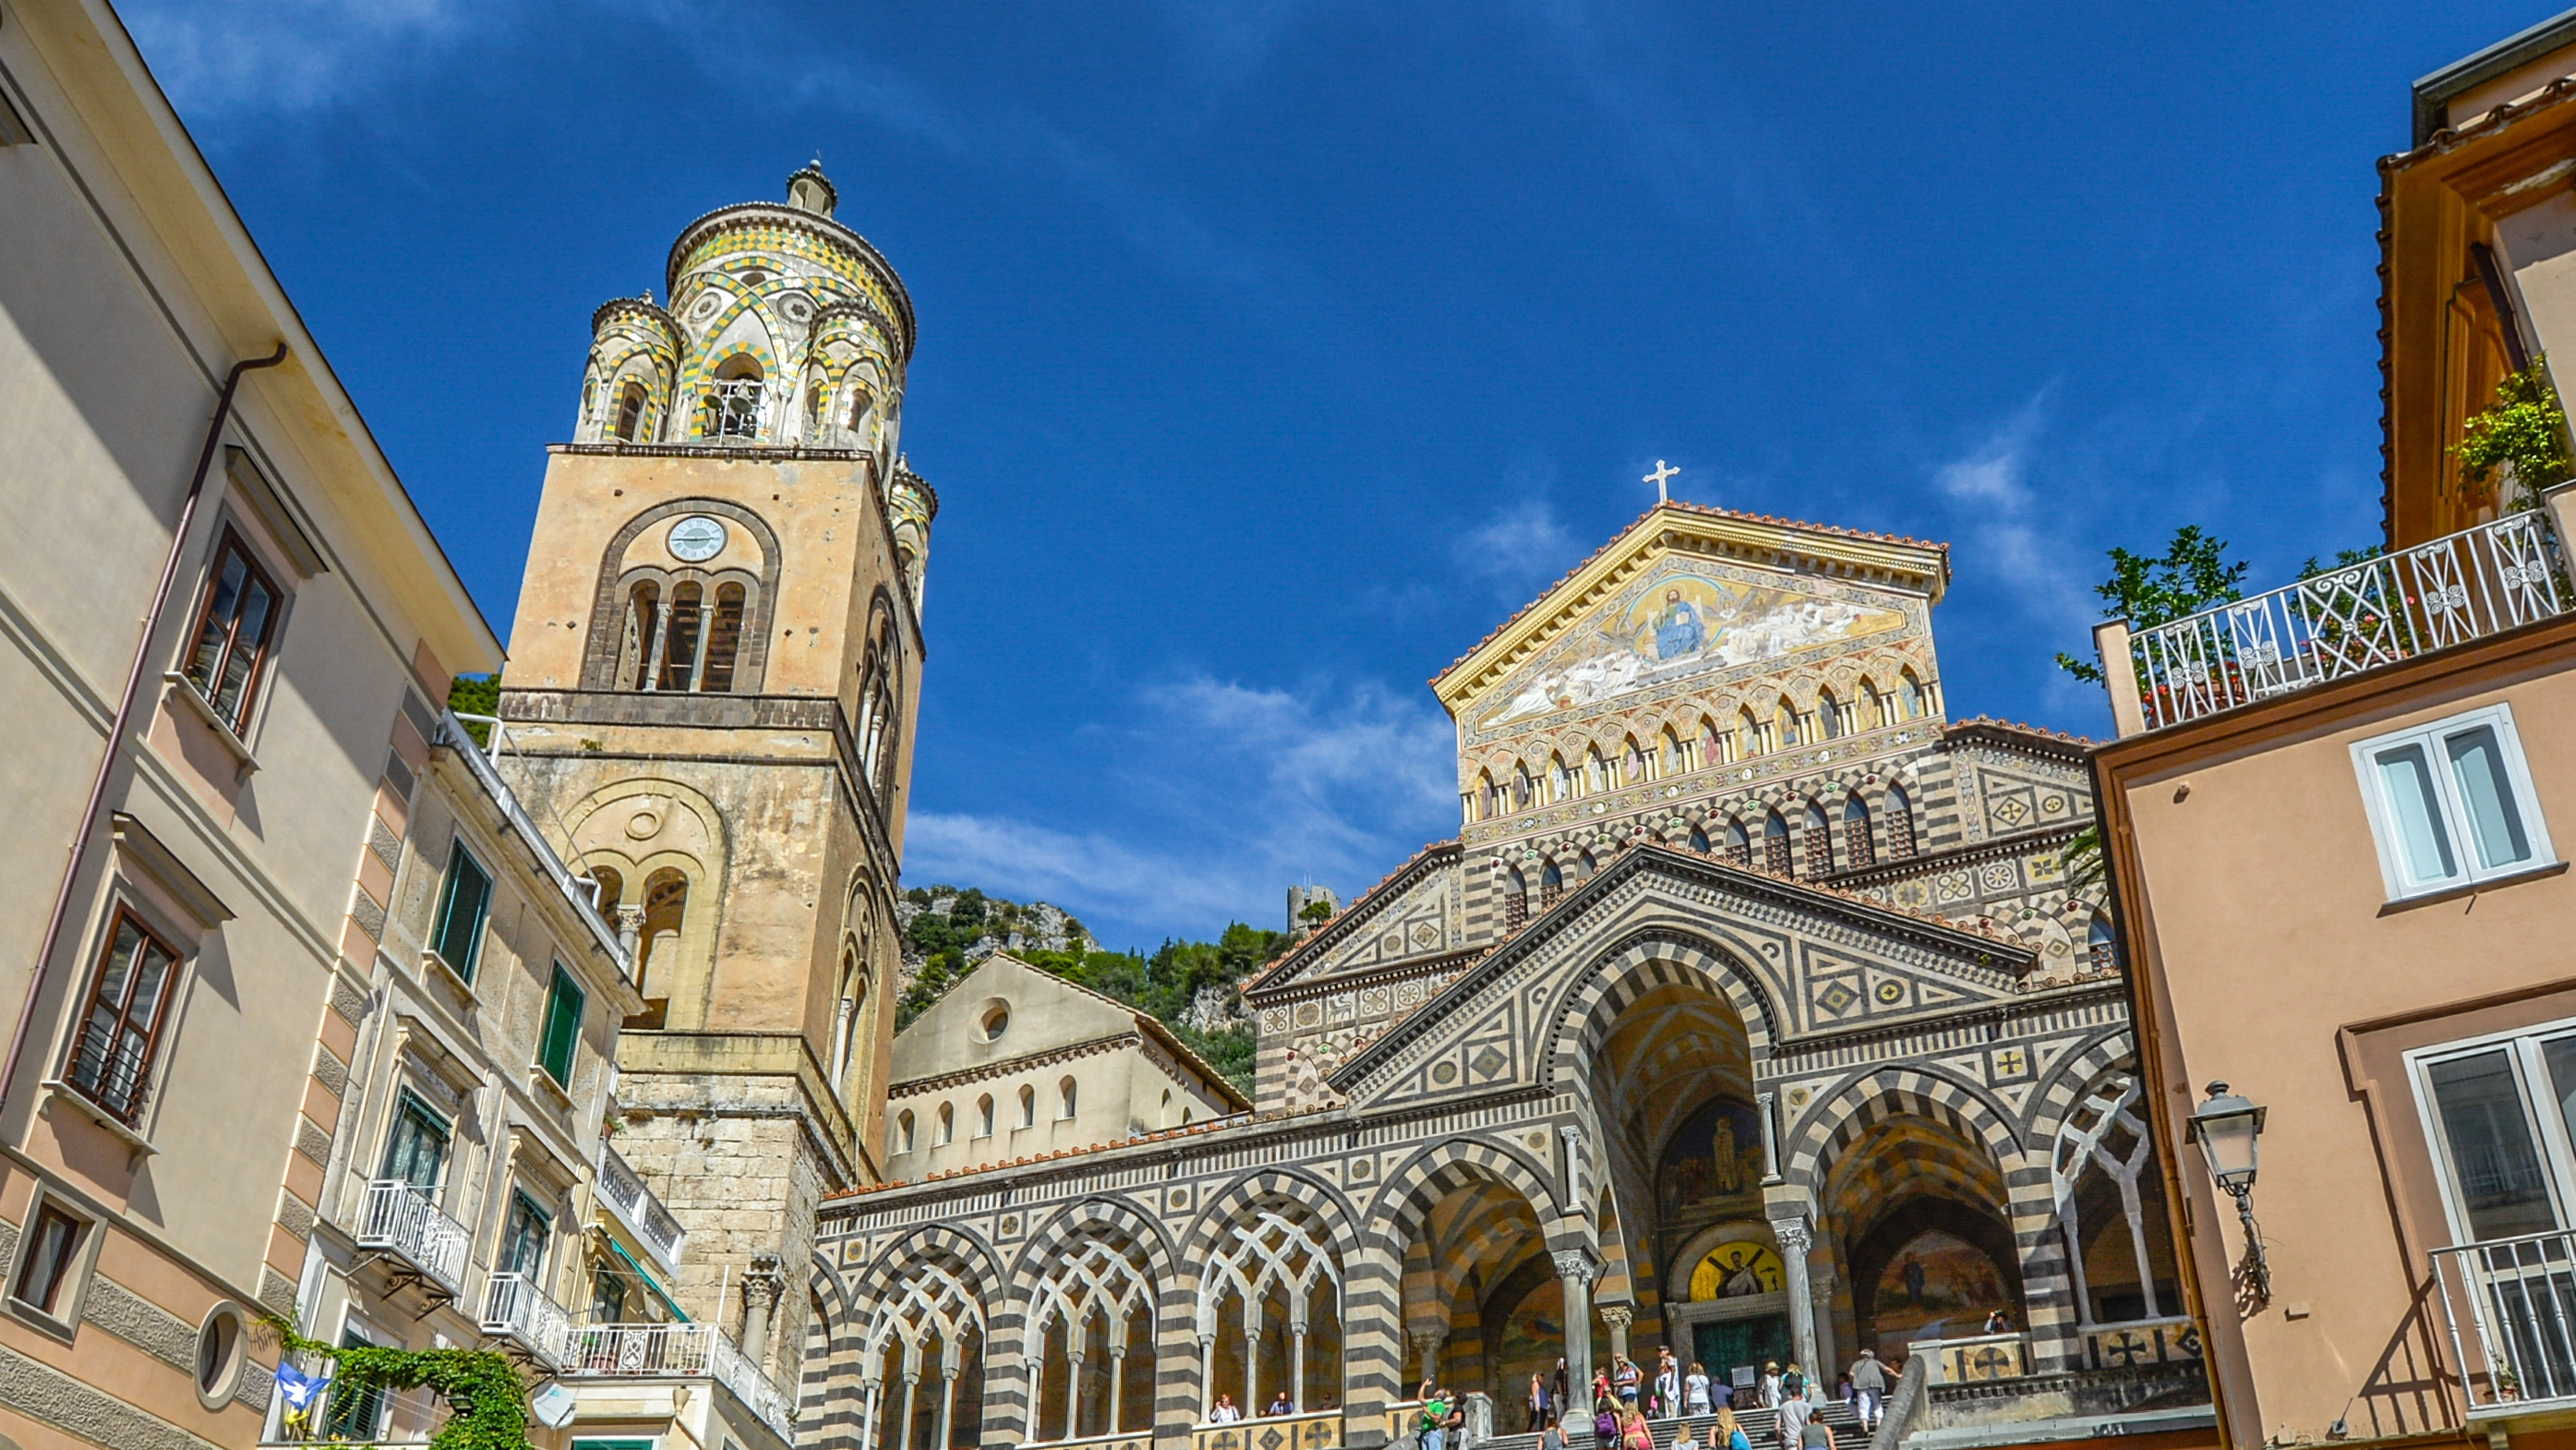 002676-amalfi-cathedral-pixabay-1968140-edit